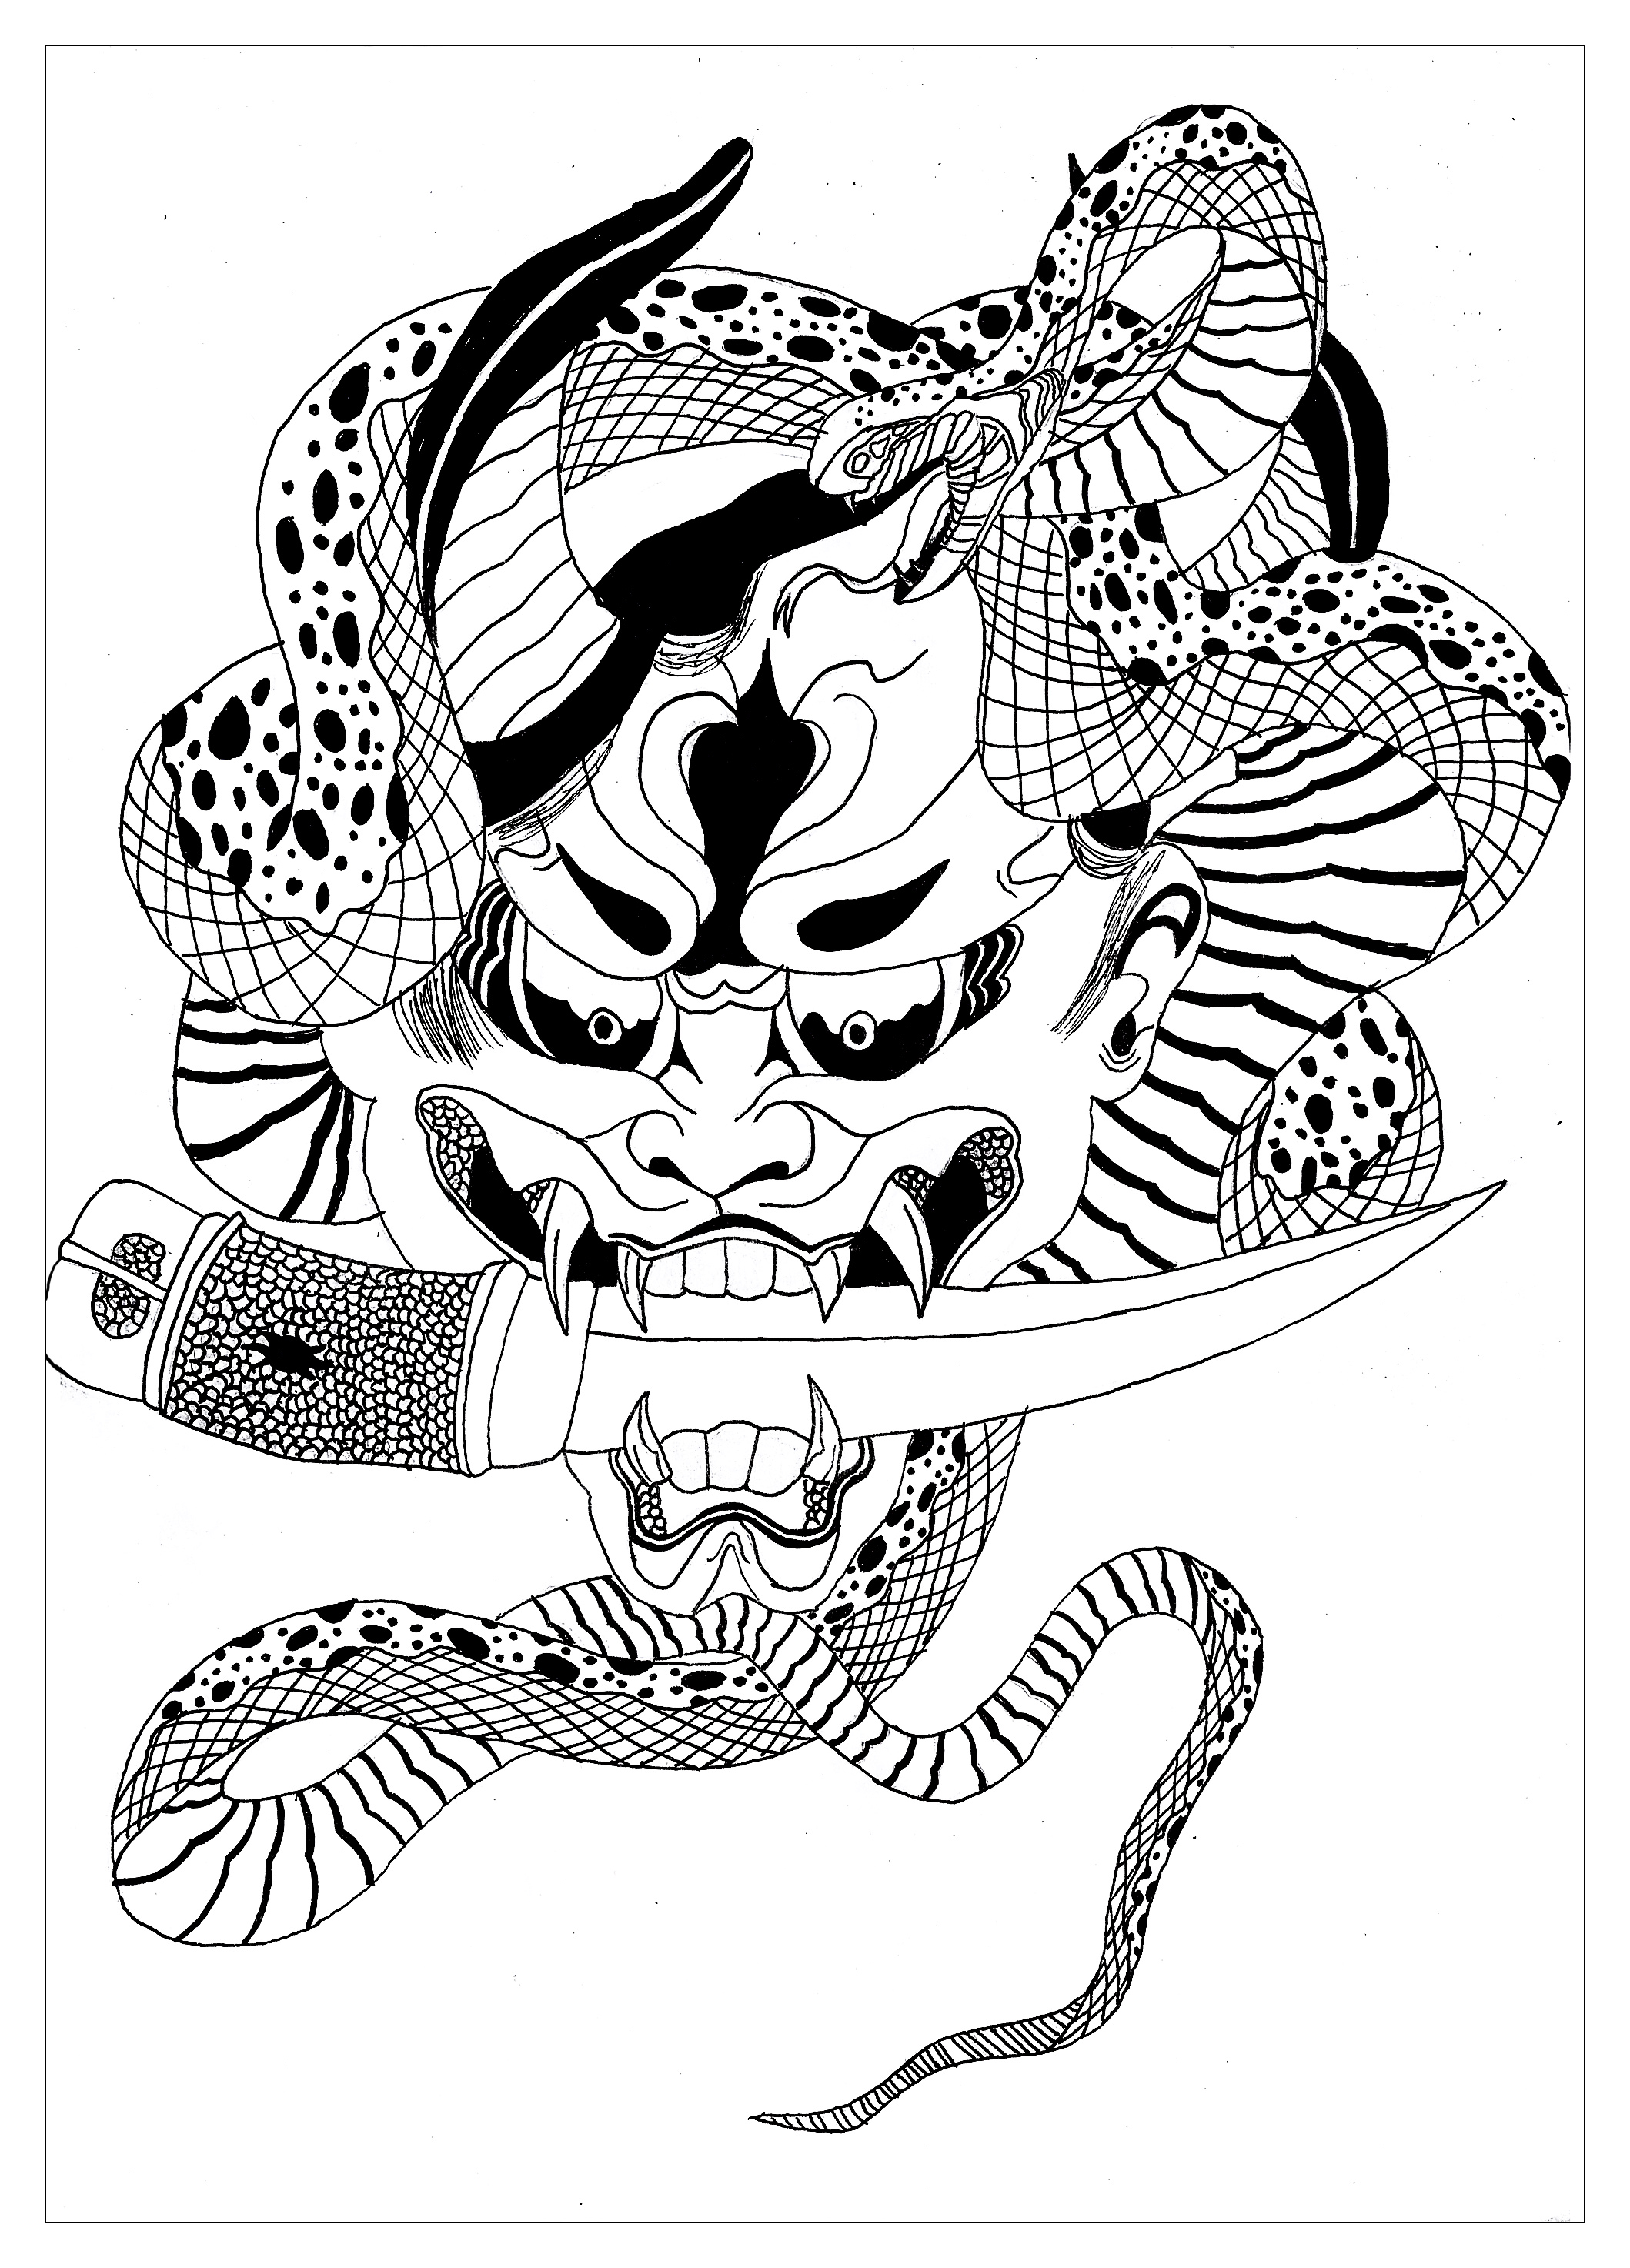 Japan Coloring pages for adults JustColor